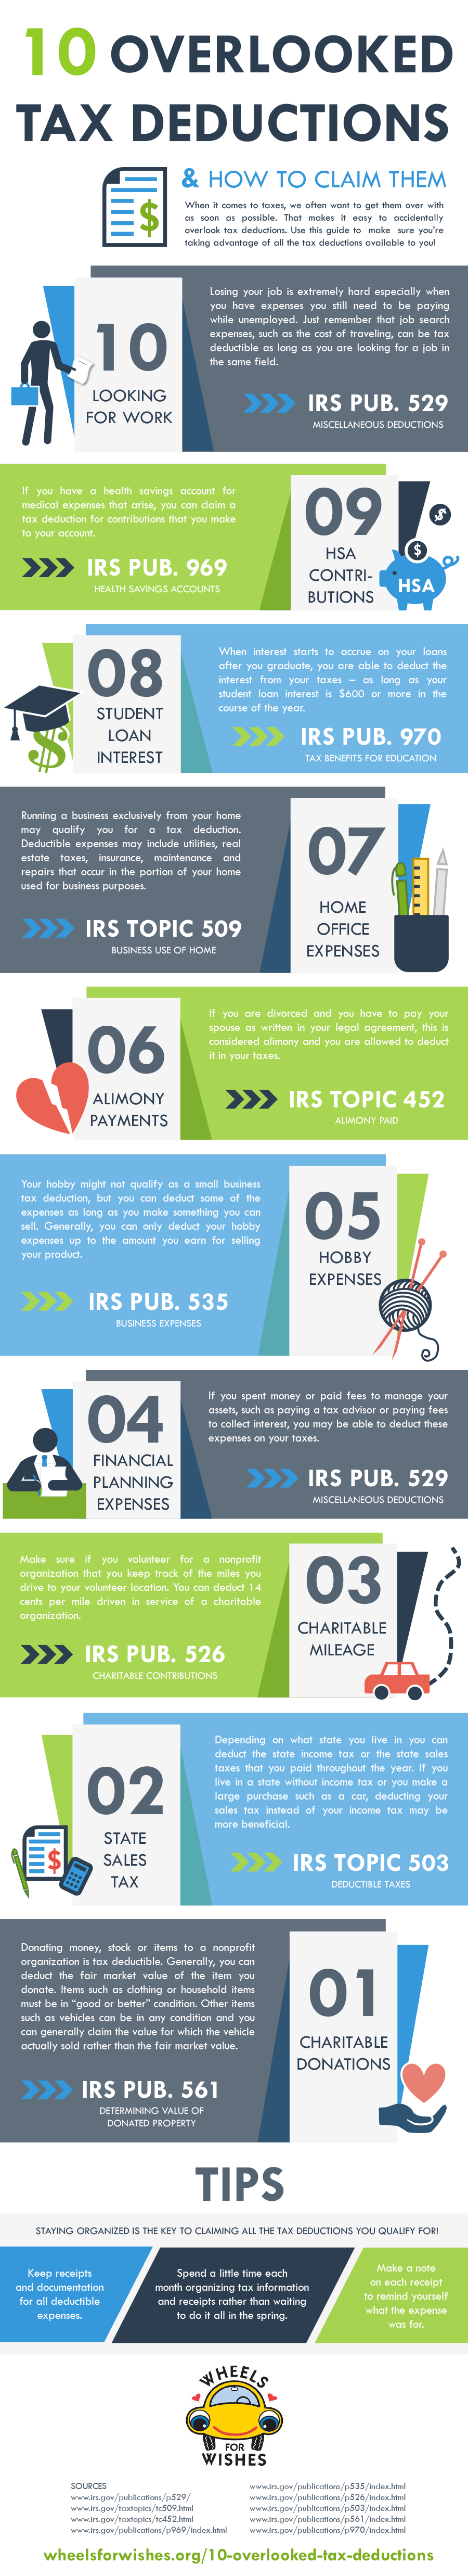 10-overlooked-tax-deductions-infographic-plaza